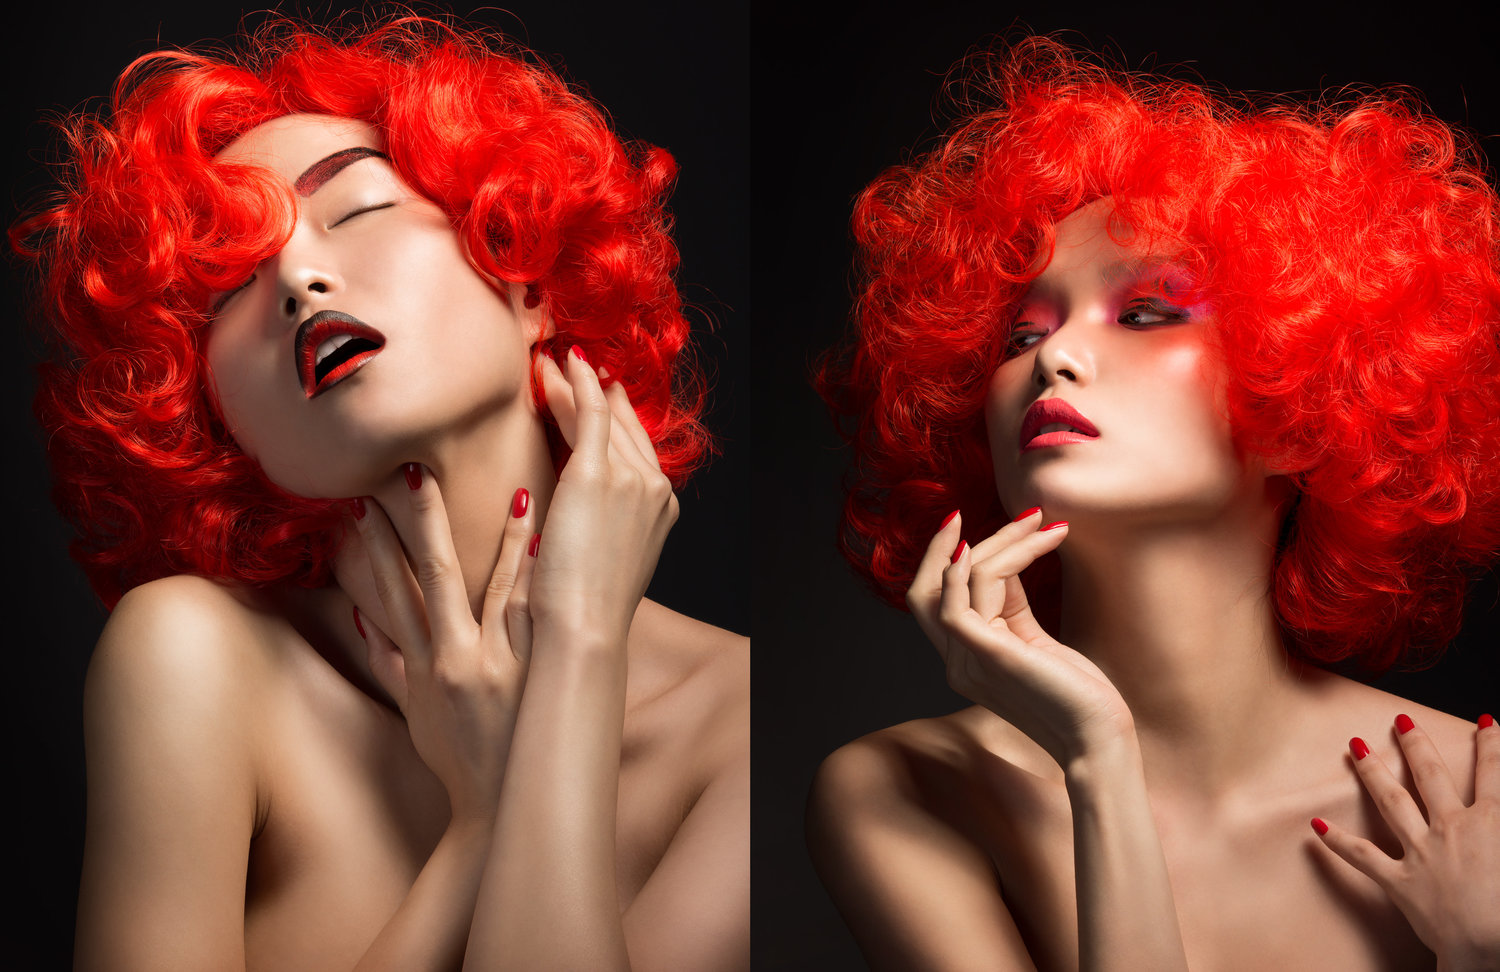 dior-red-hair-asian-model-fashion-photographer-advertising-photography-stan-musilek.jpg